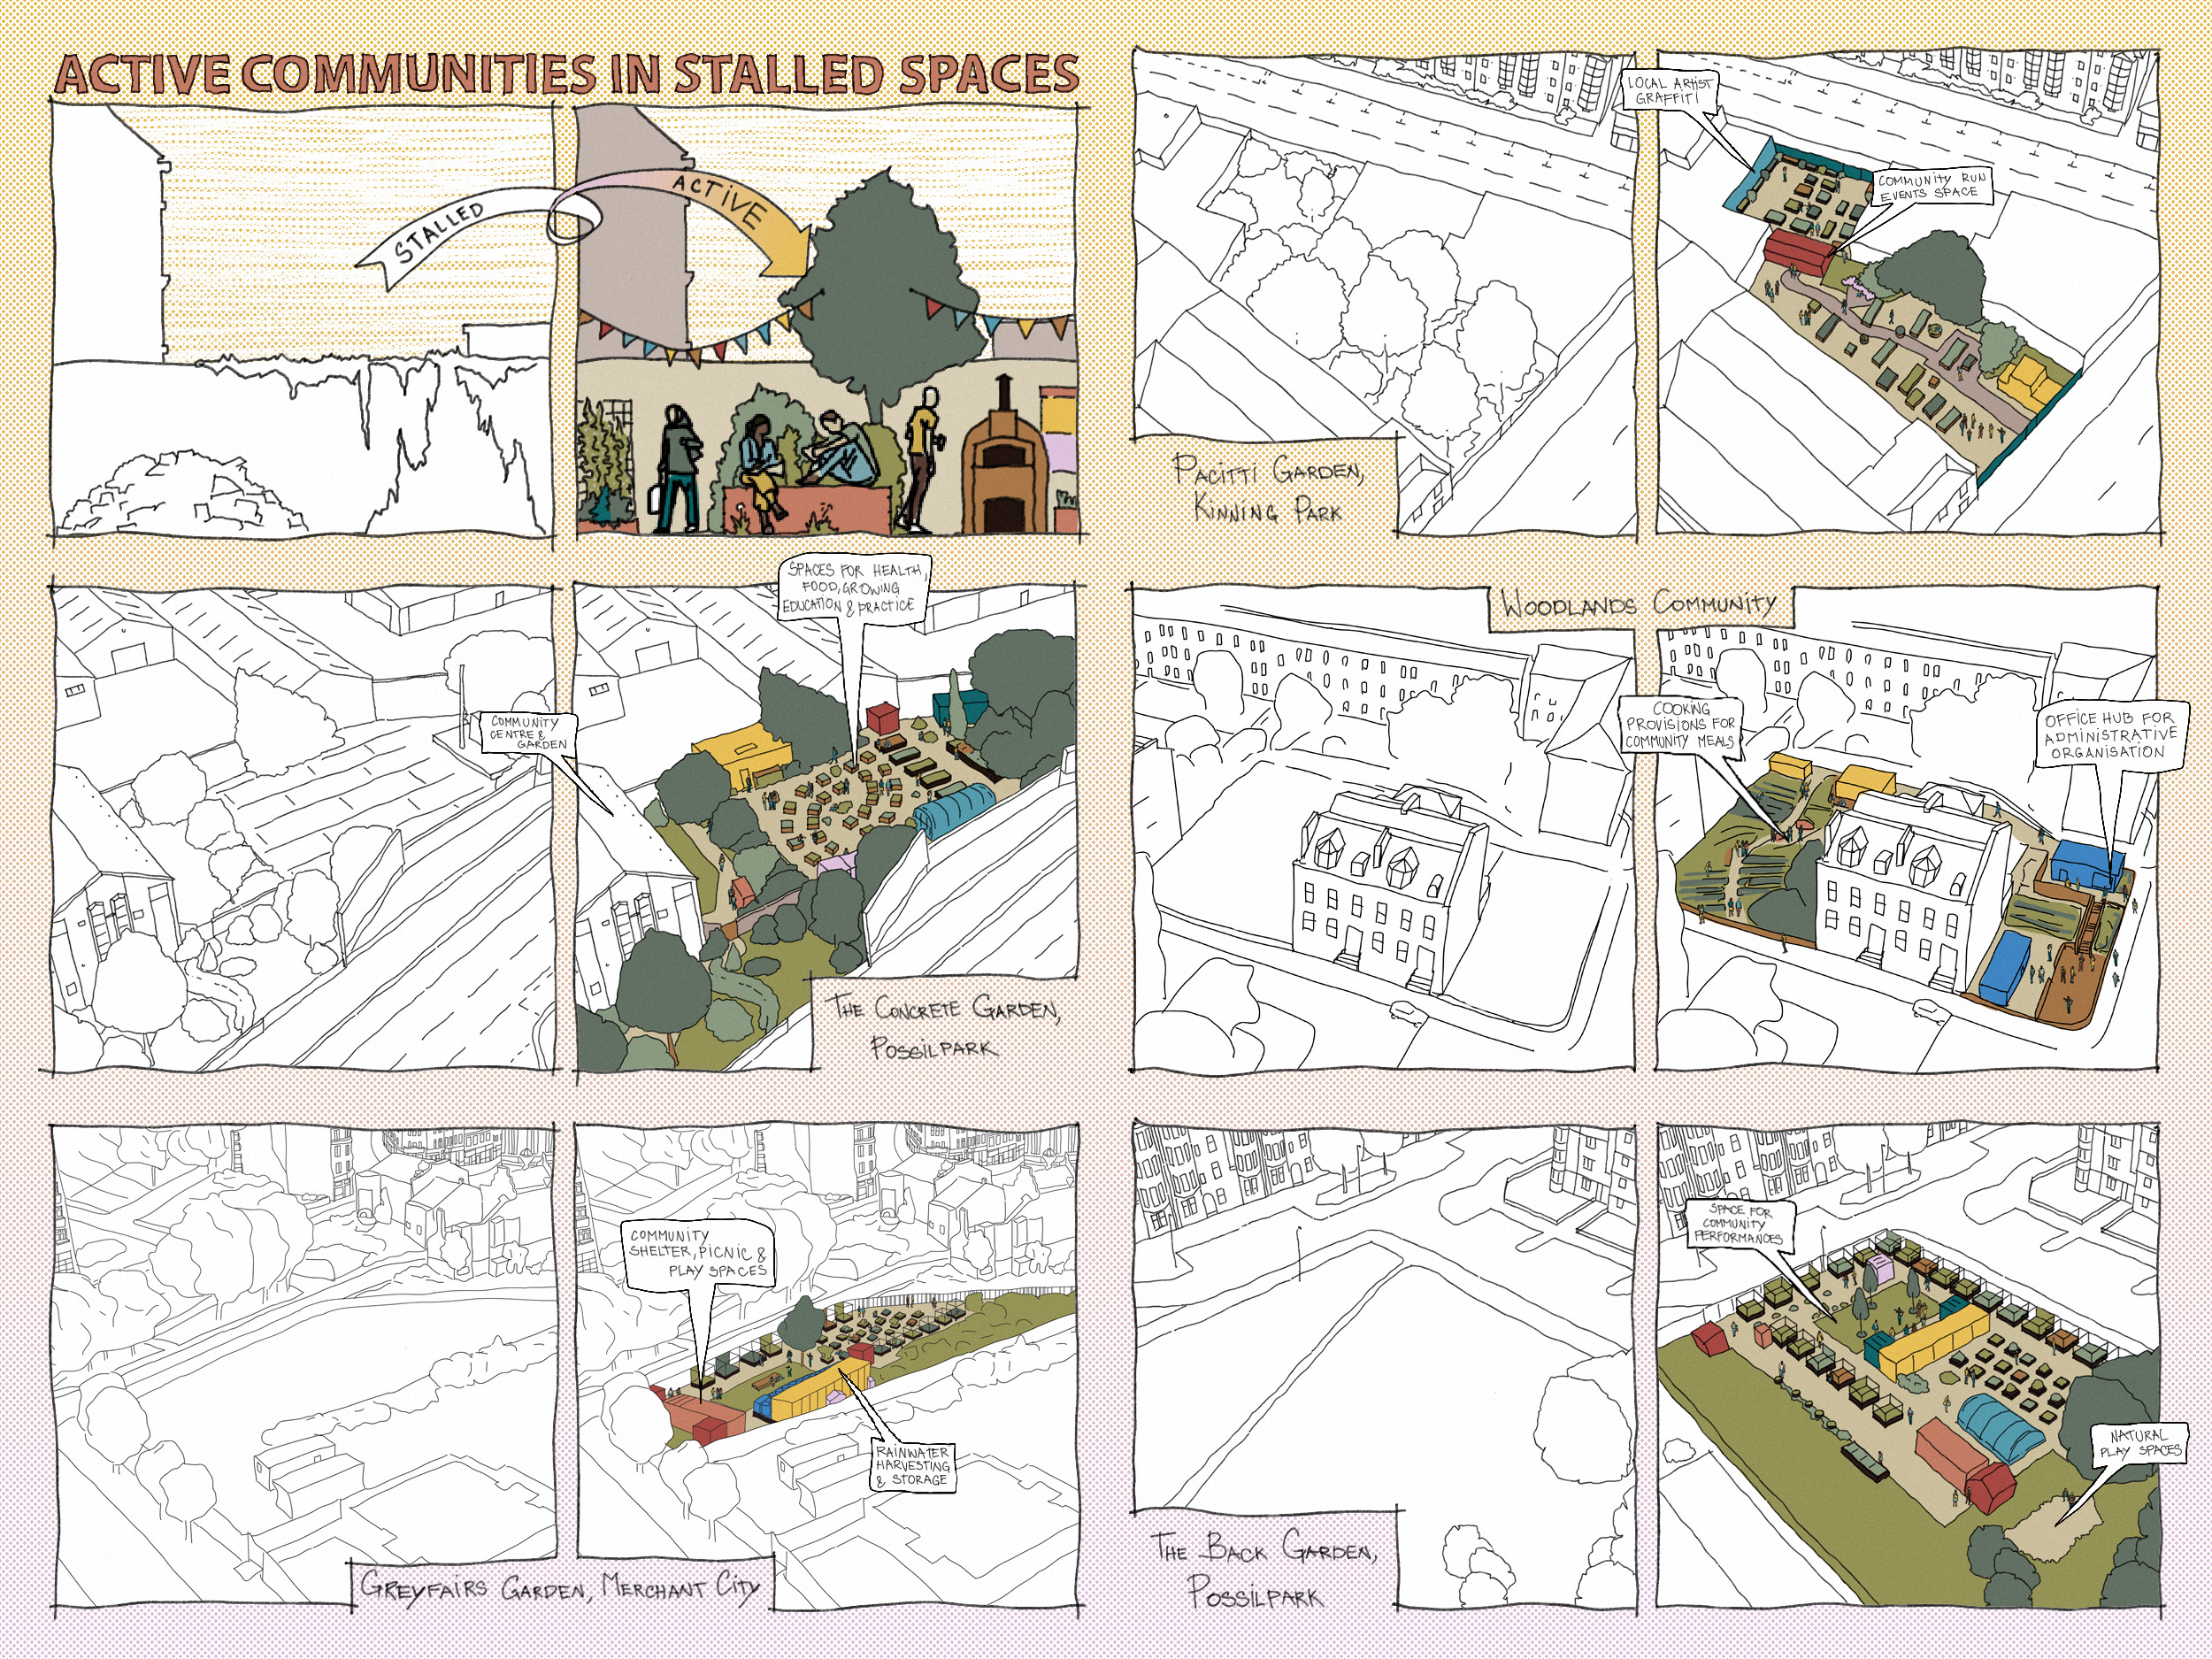 Active Communities in Stalled Spaces